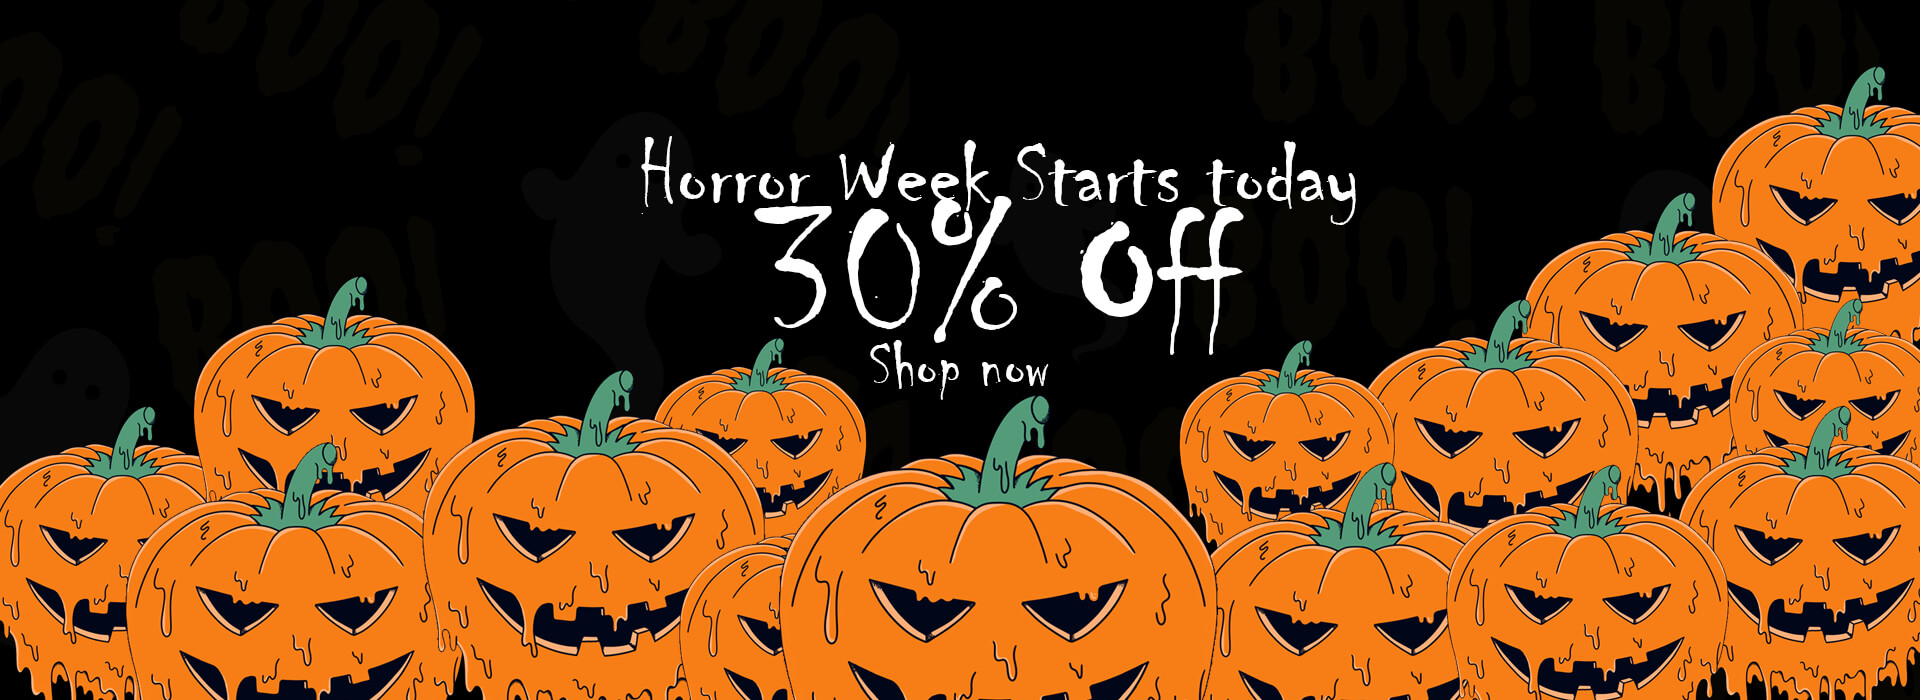 Horror Week Starts today 30% OFF